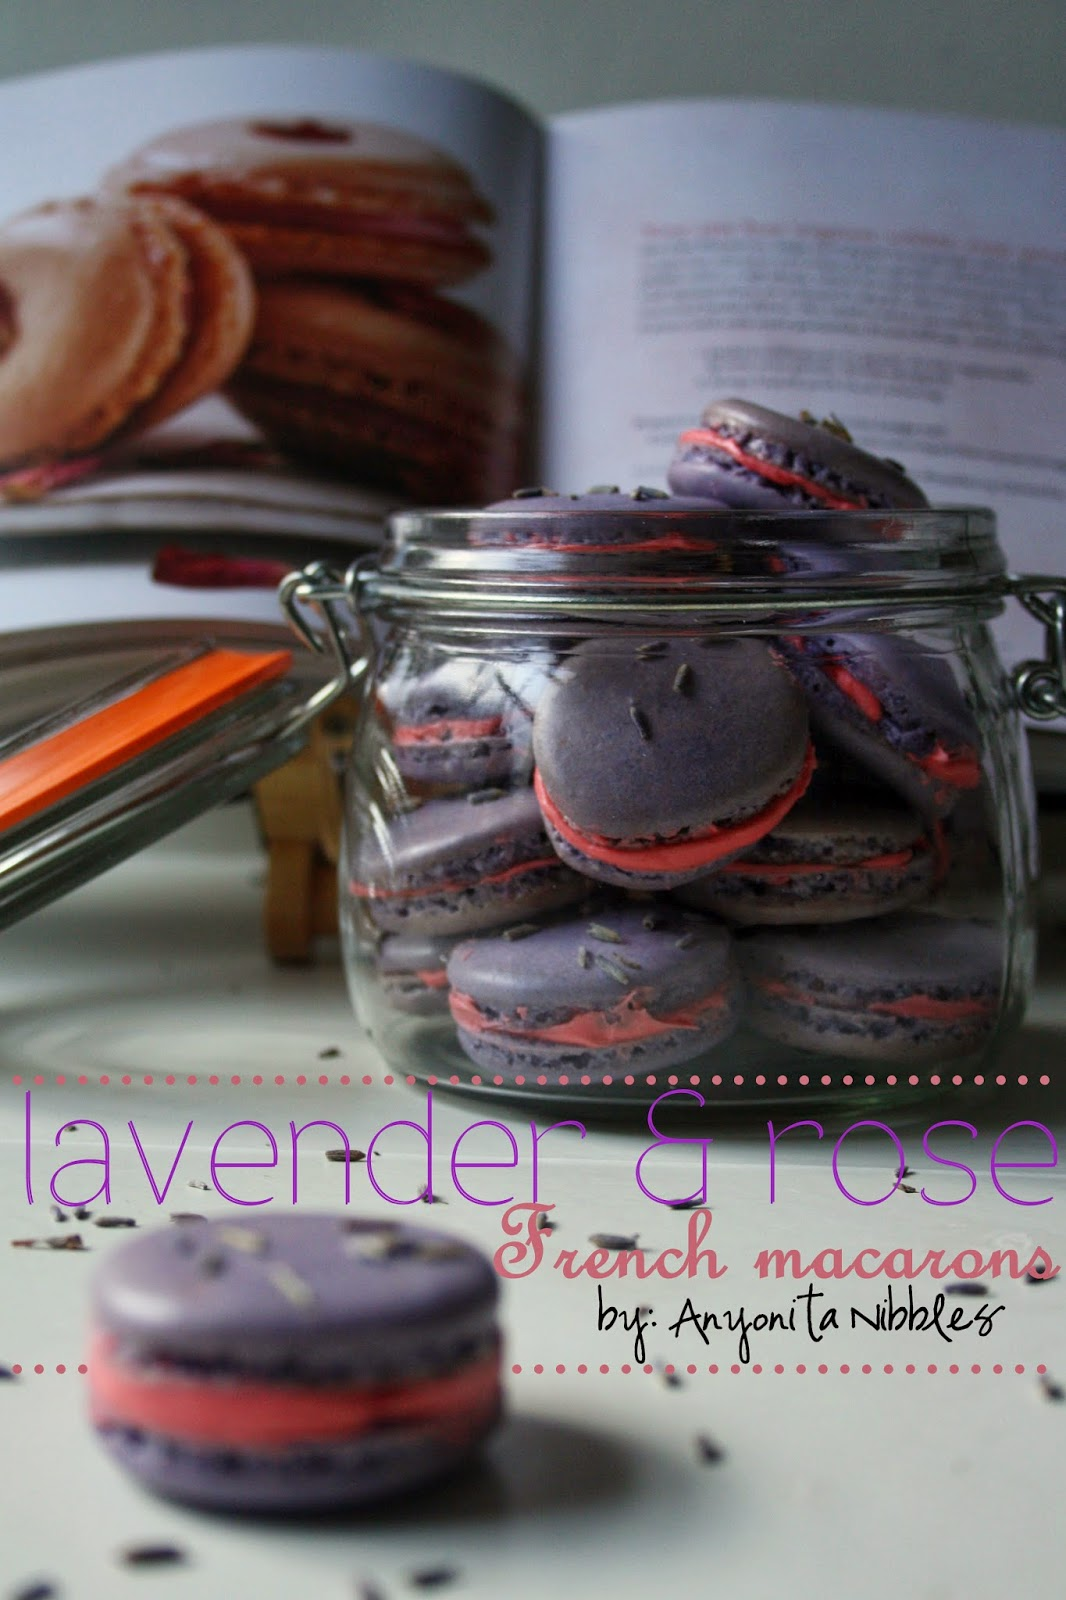 These lavender and rose #macarons from @anyonita would make an excellent #Mother'sDay gift! Pacakage them in a lovely box or jar for a pretty present.